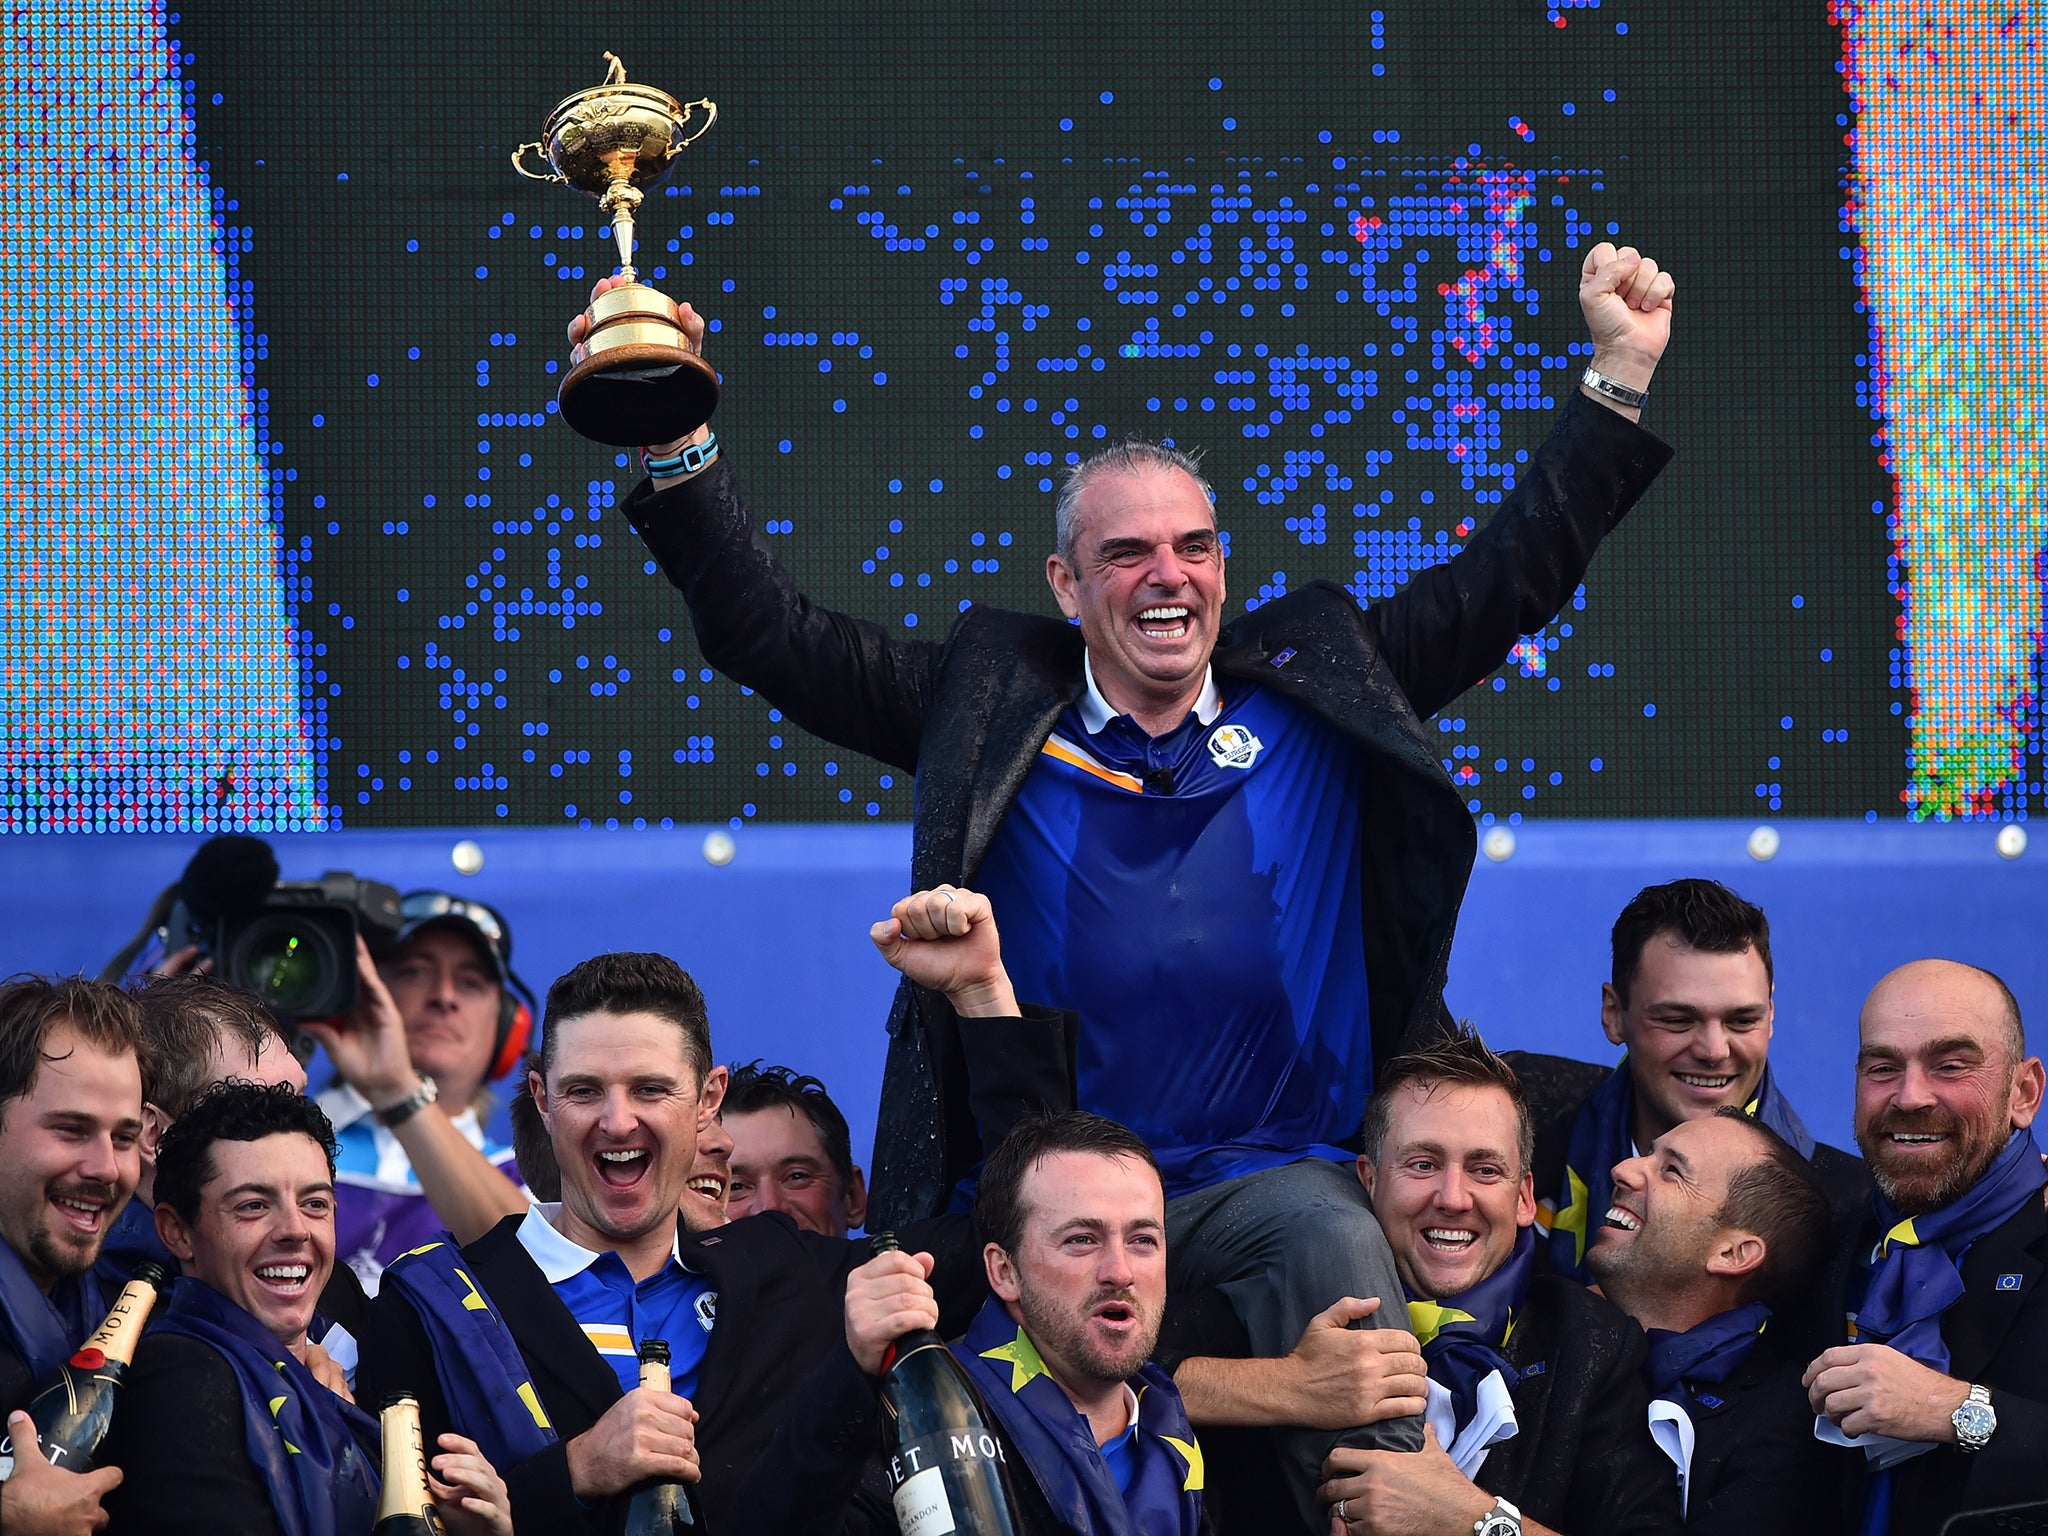 Ryder Cup Fans Ryder Cup 2014 The Top 10